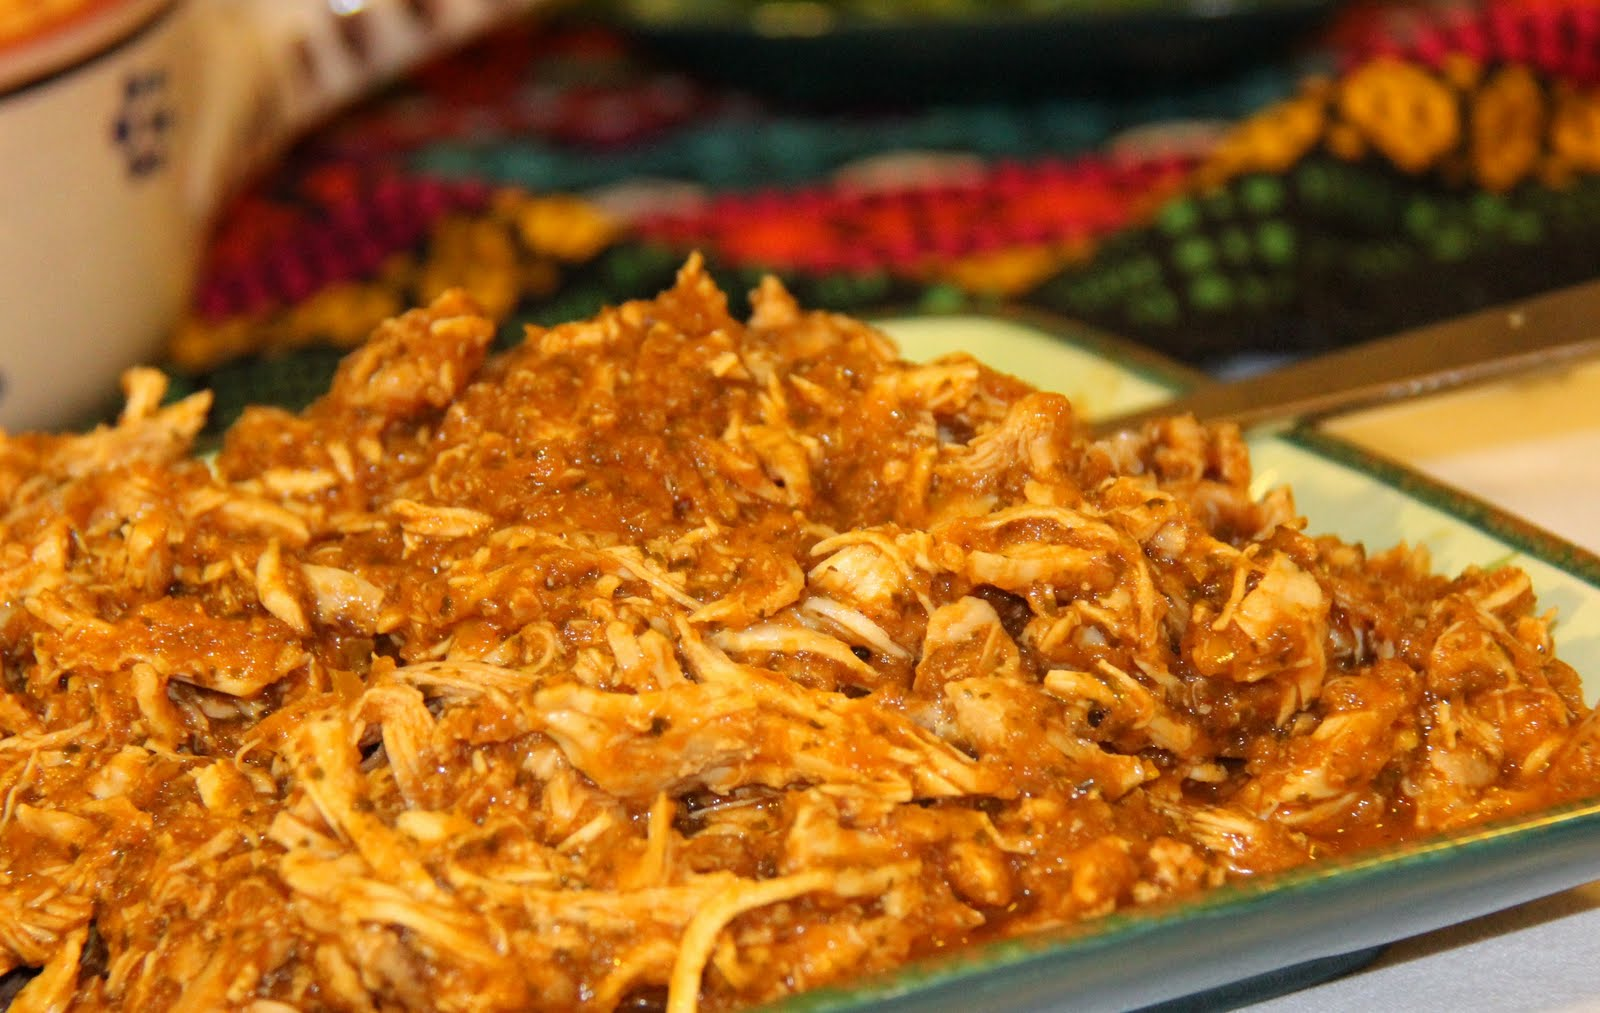 This recipe for Crock-Pot Chicken Tacos creates flavorful, incredibly tender shredded chicken that works beautifully in a variety of Mexican dishes.